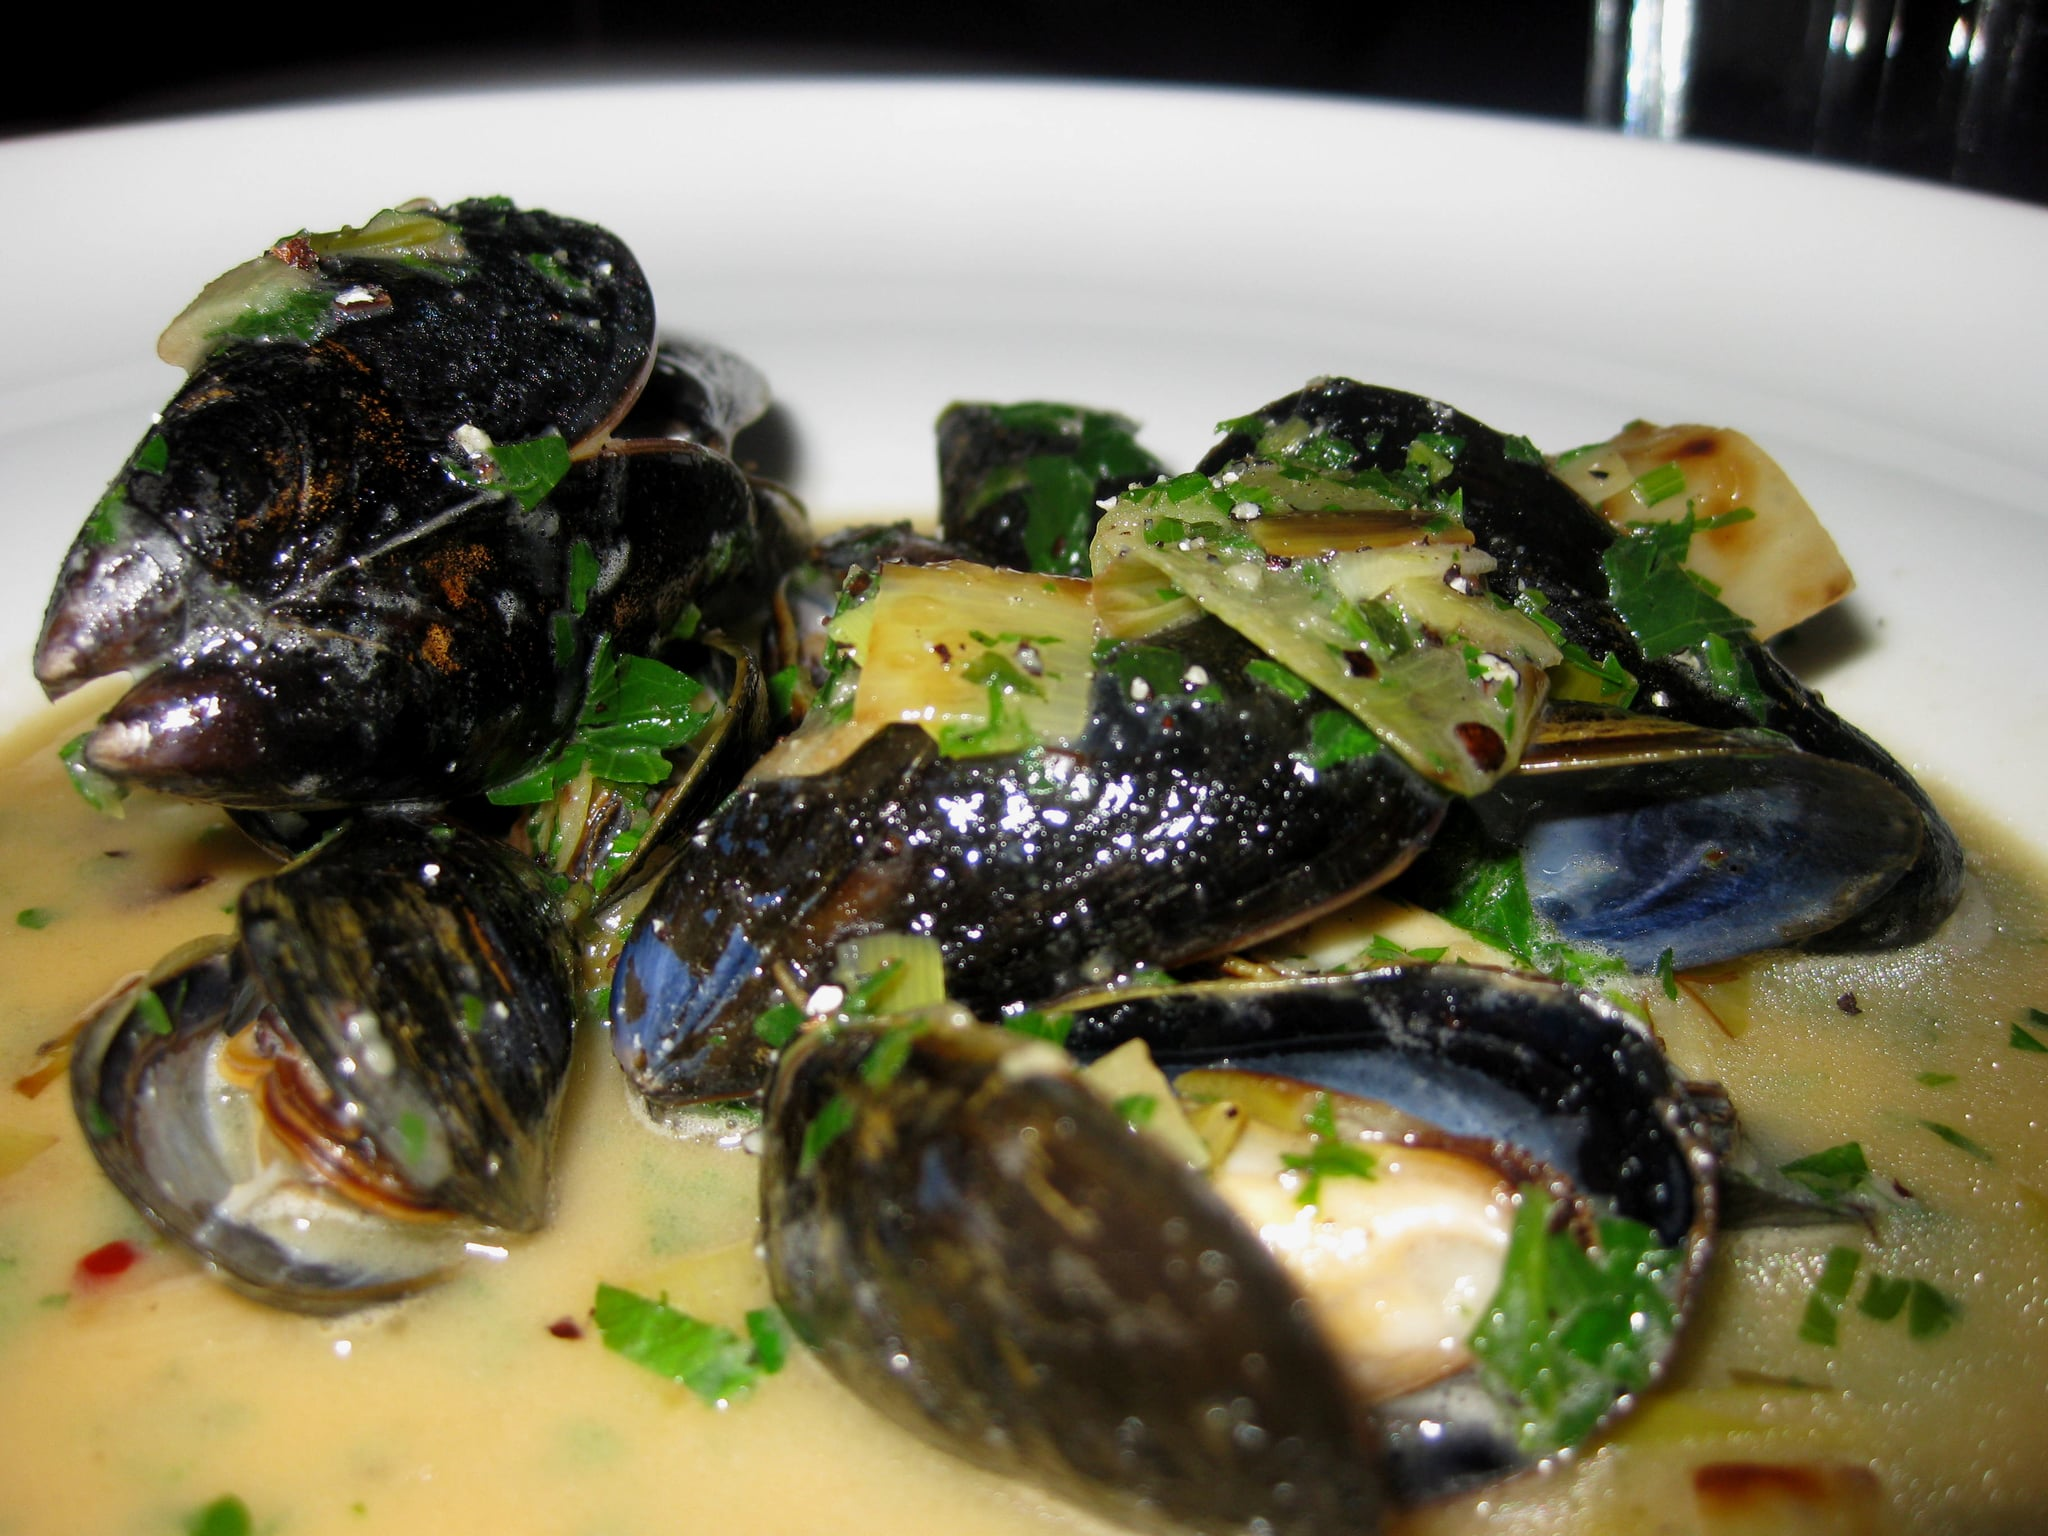 Moules Frites: The licorice flavor of the pastis lingers on the palette while enhancing the natural brininess of the shellfish.